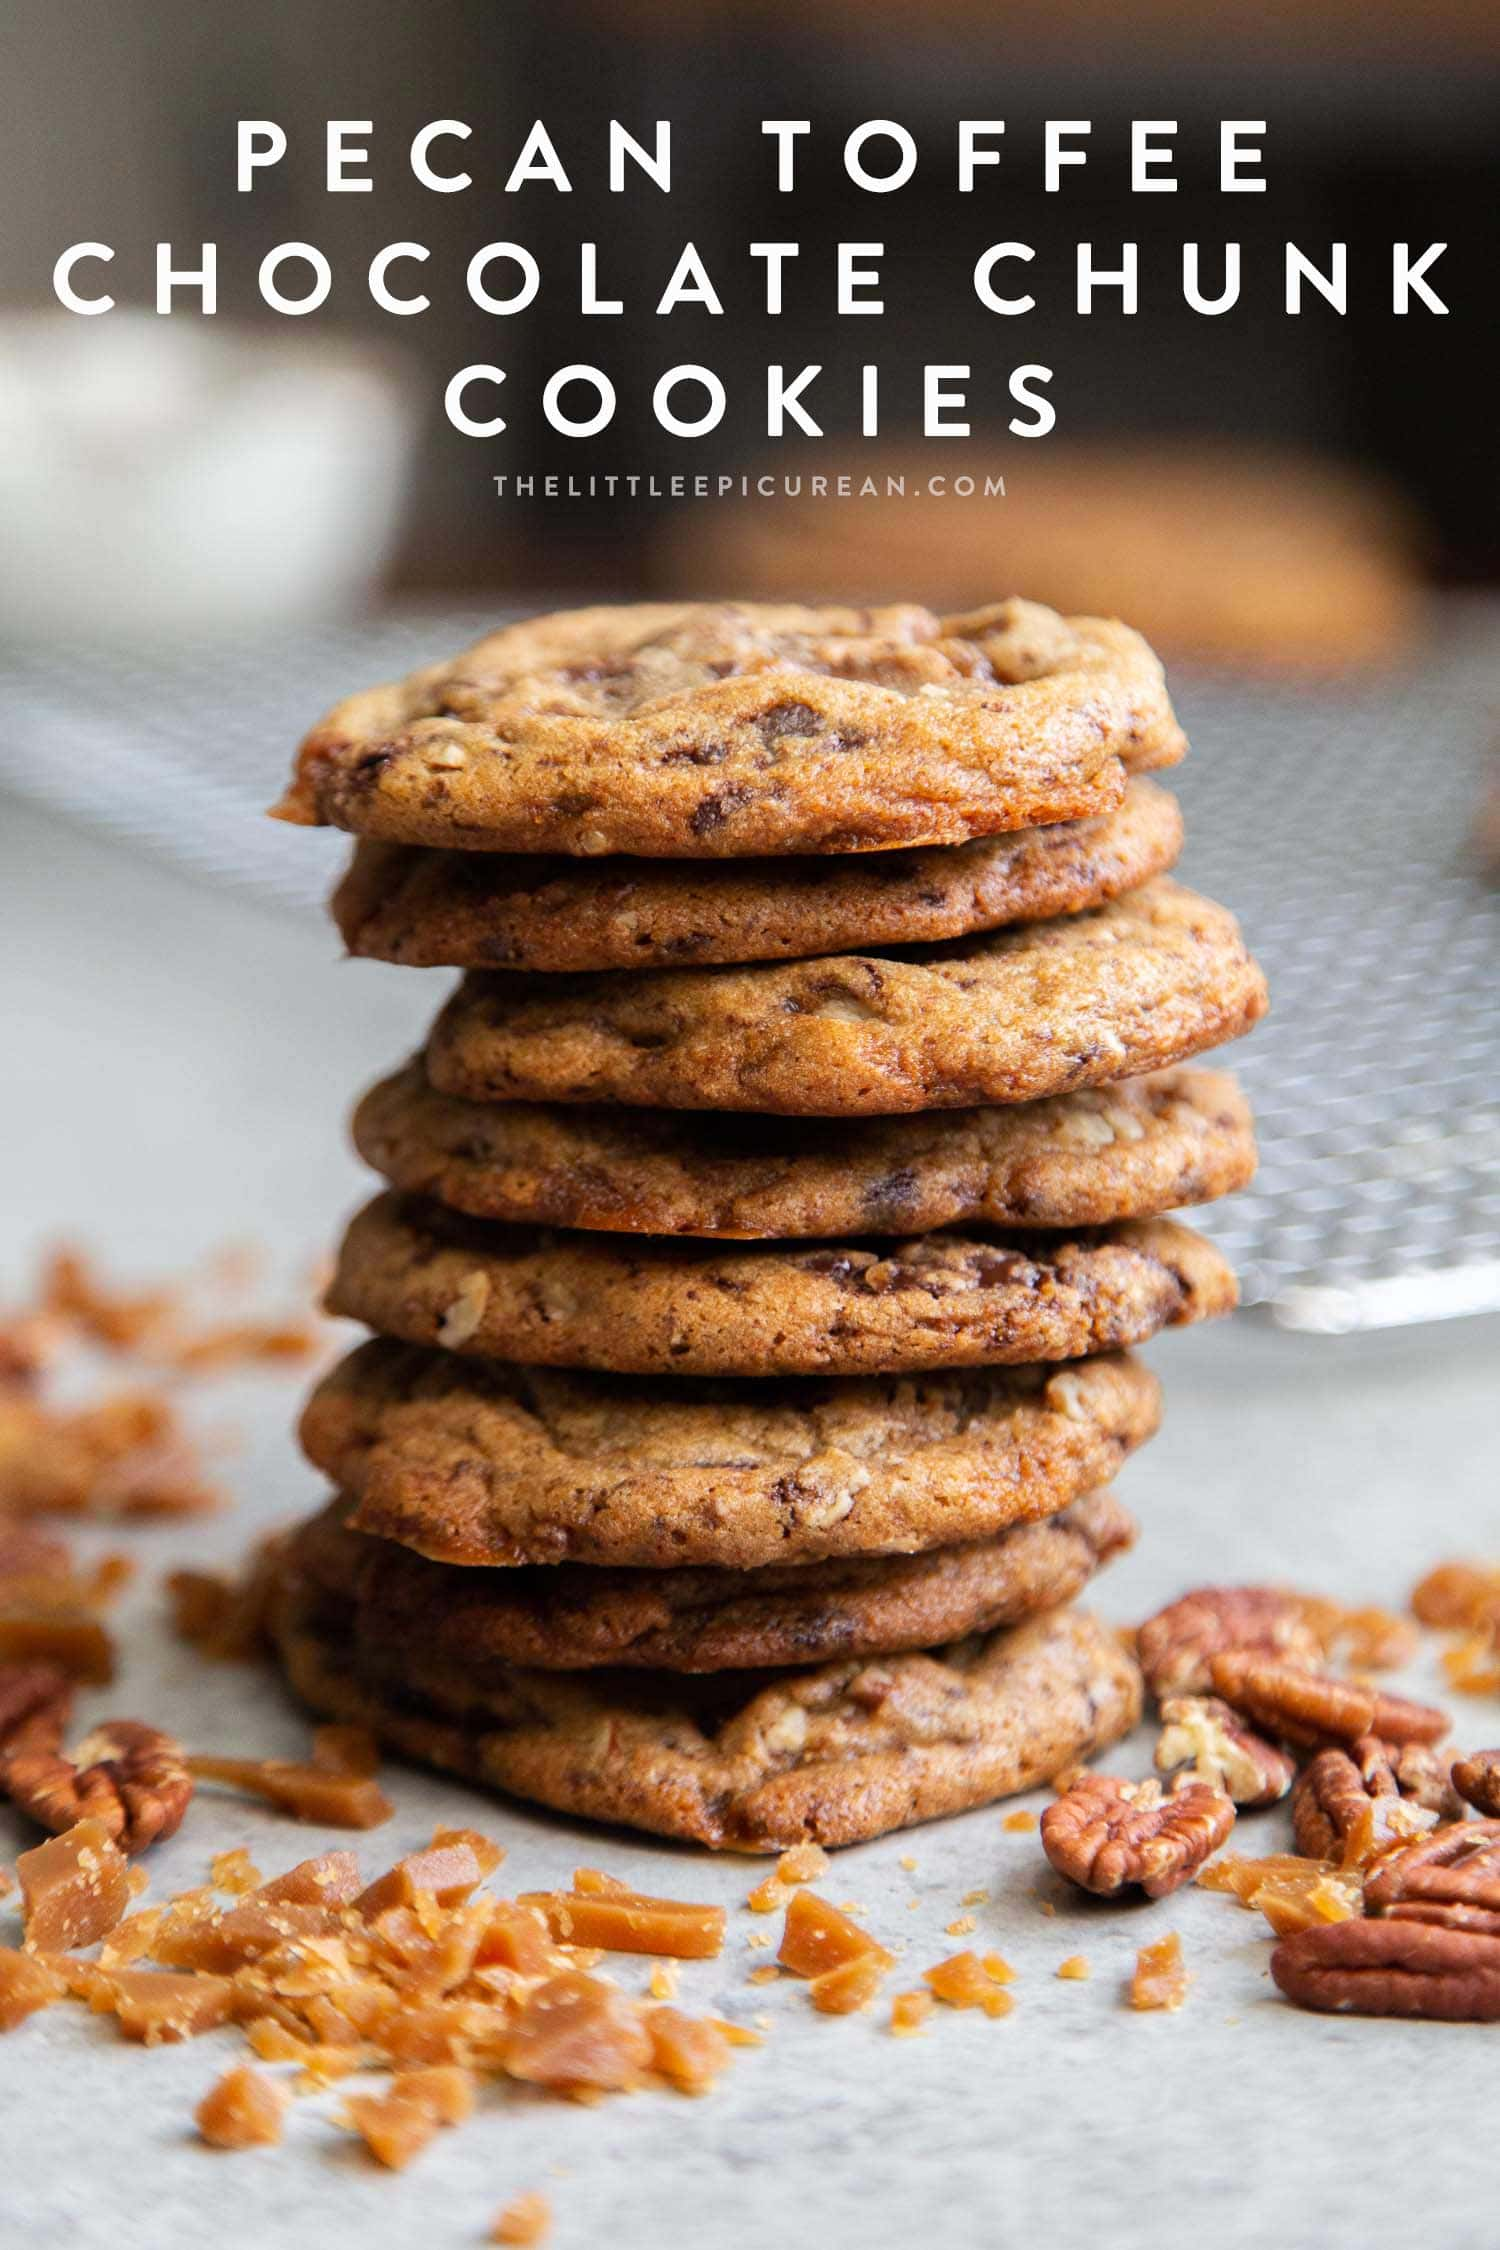 Pecan Toffee Chocolate Chunk Cookies. These soft and chewy cookies are loaded with flavor. They remain chewy even days after baking! #cookies #holidaycookies #cookieexchange #recipe #chocolate #toffee #dessert